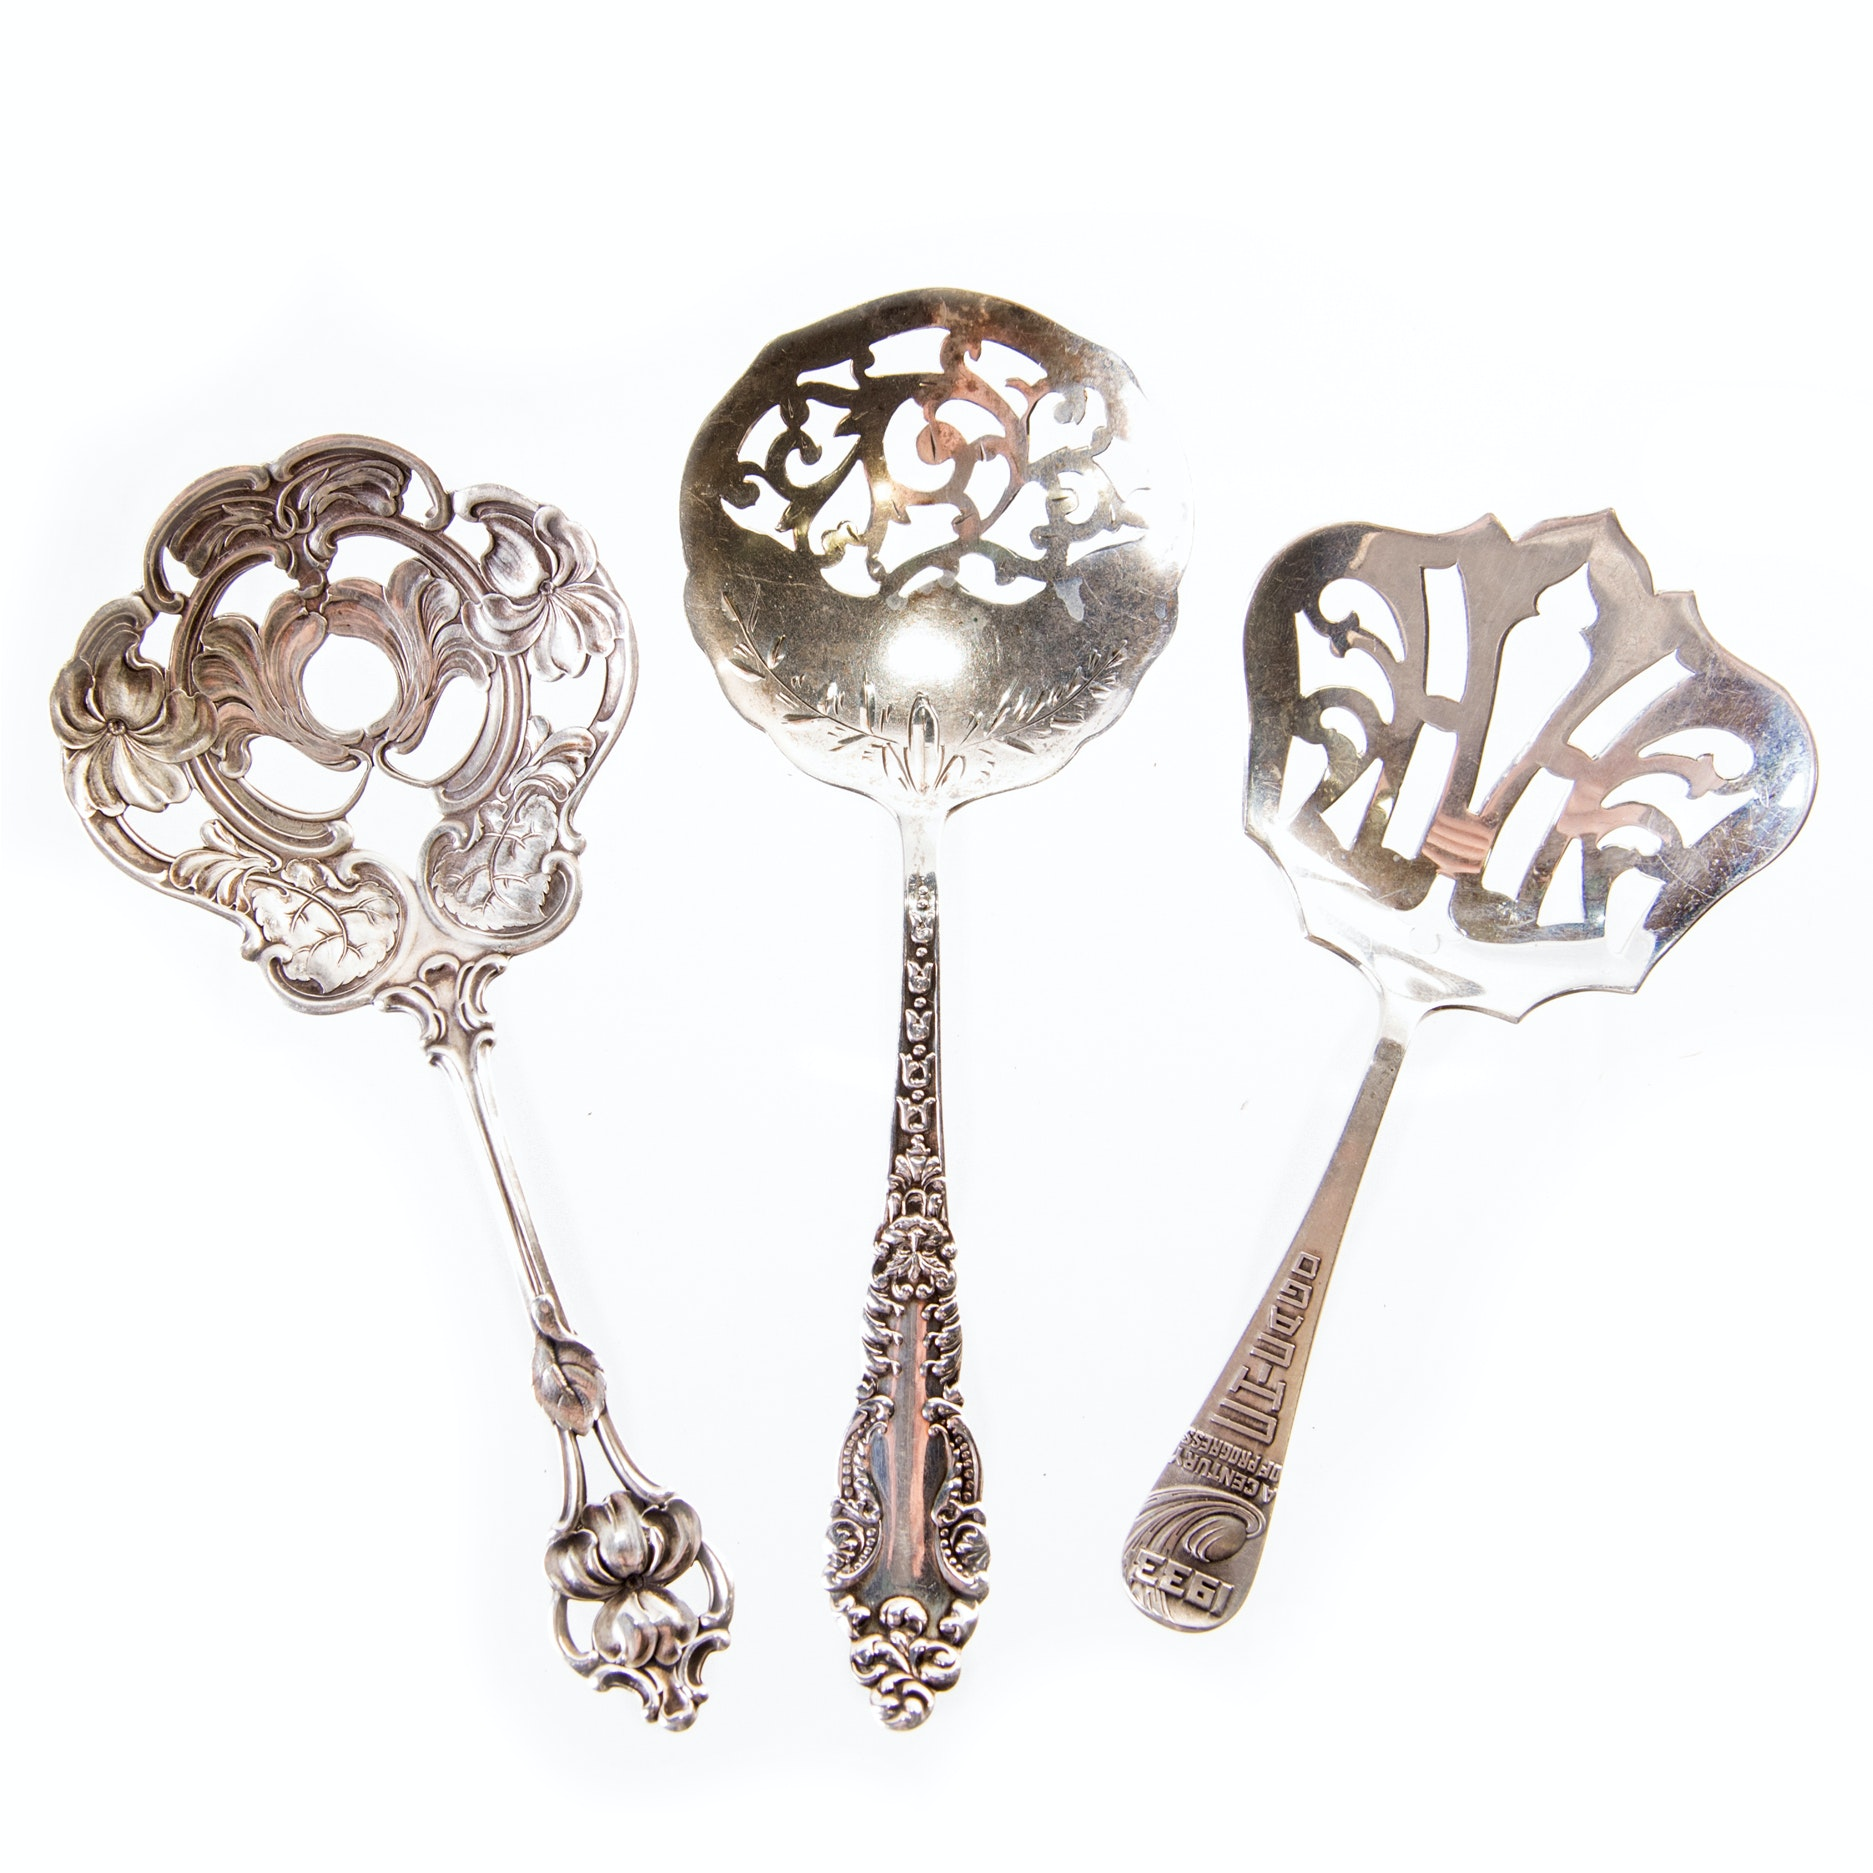 R. Wallace & Sons and Other Sterling Silver Bon Bon Spoons